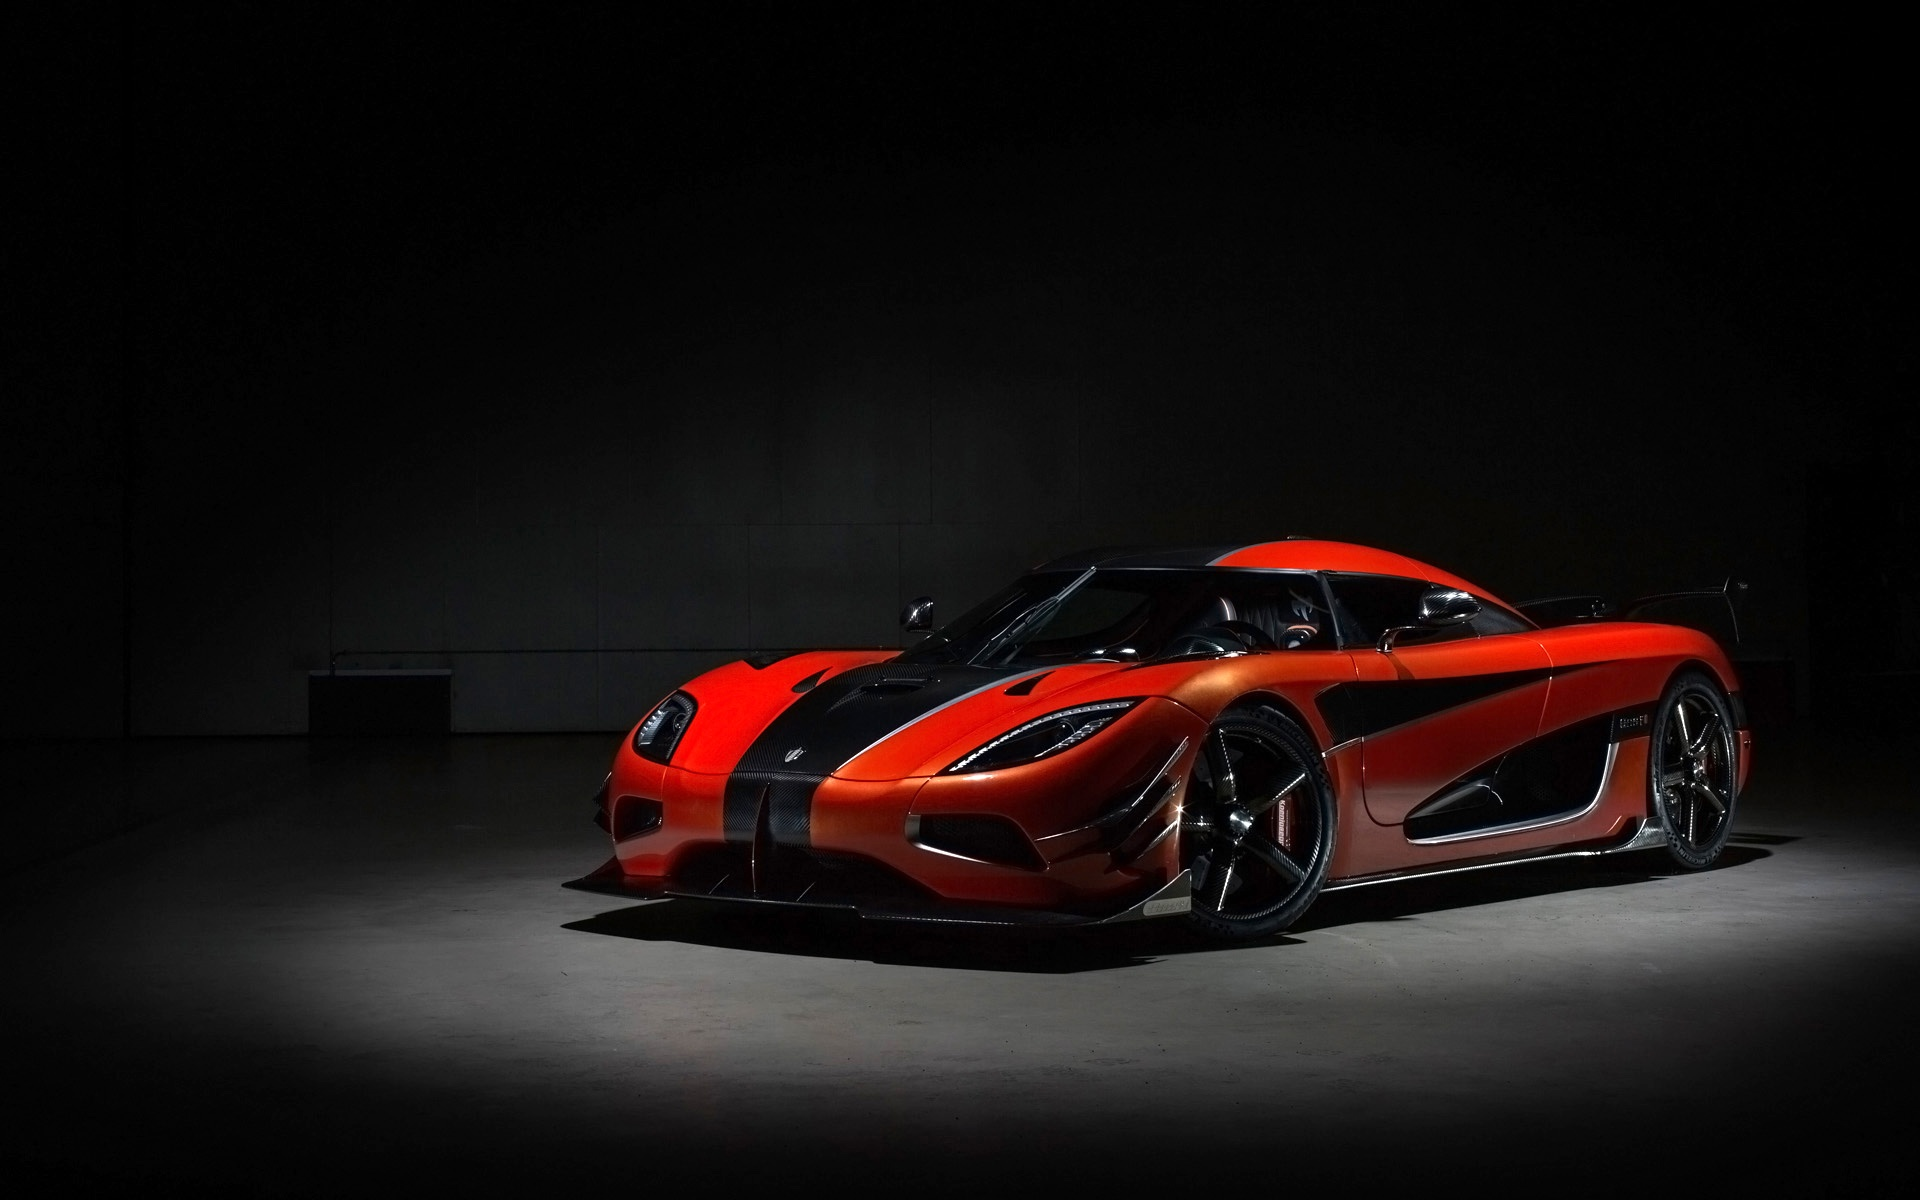 Etonnant 2016 Koenigsegg Agera Final One Of One Wallpapers